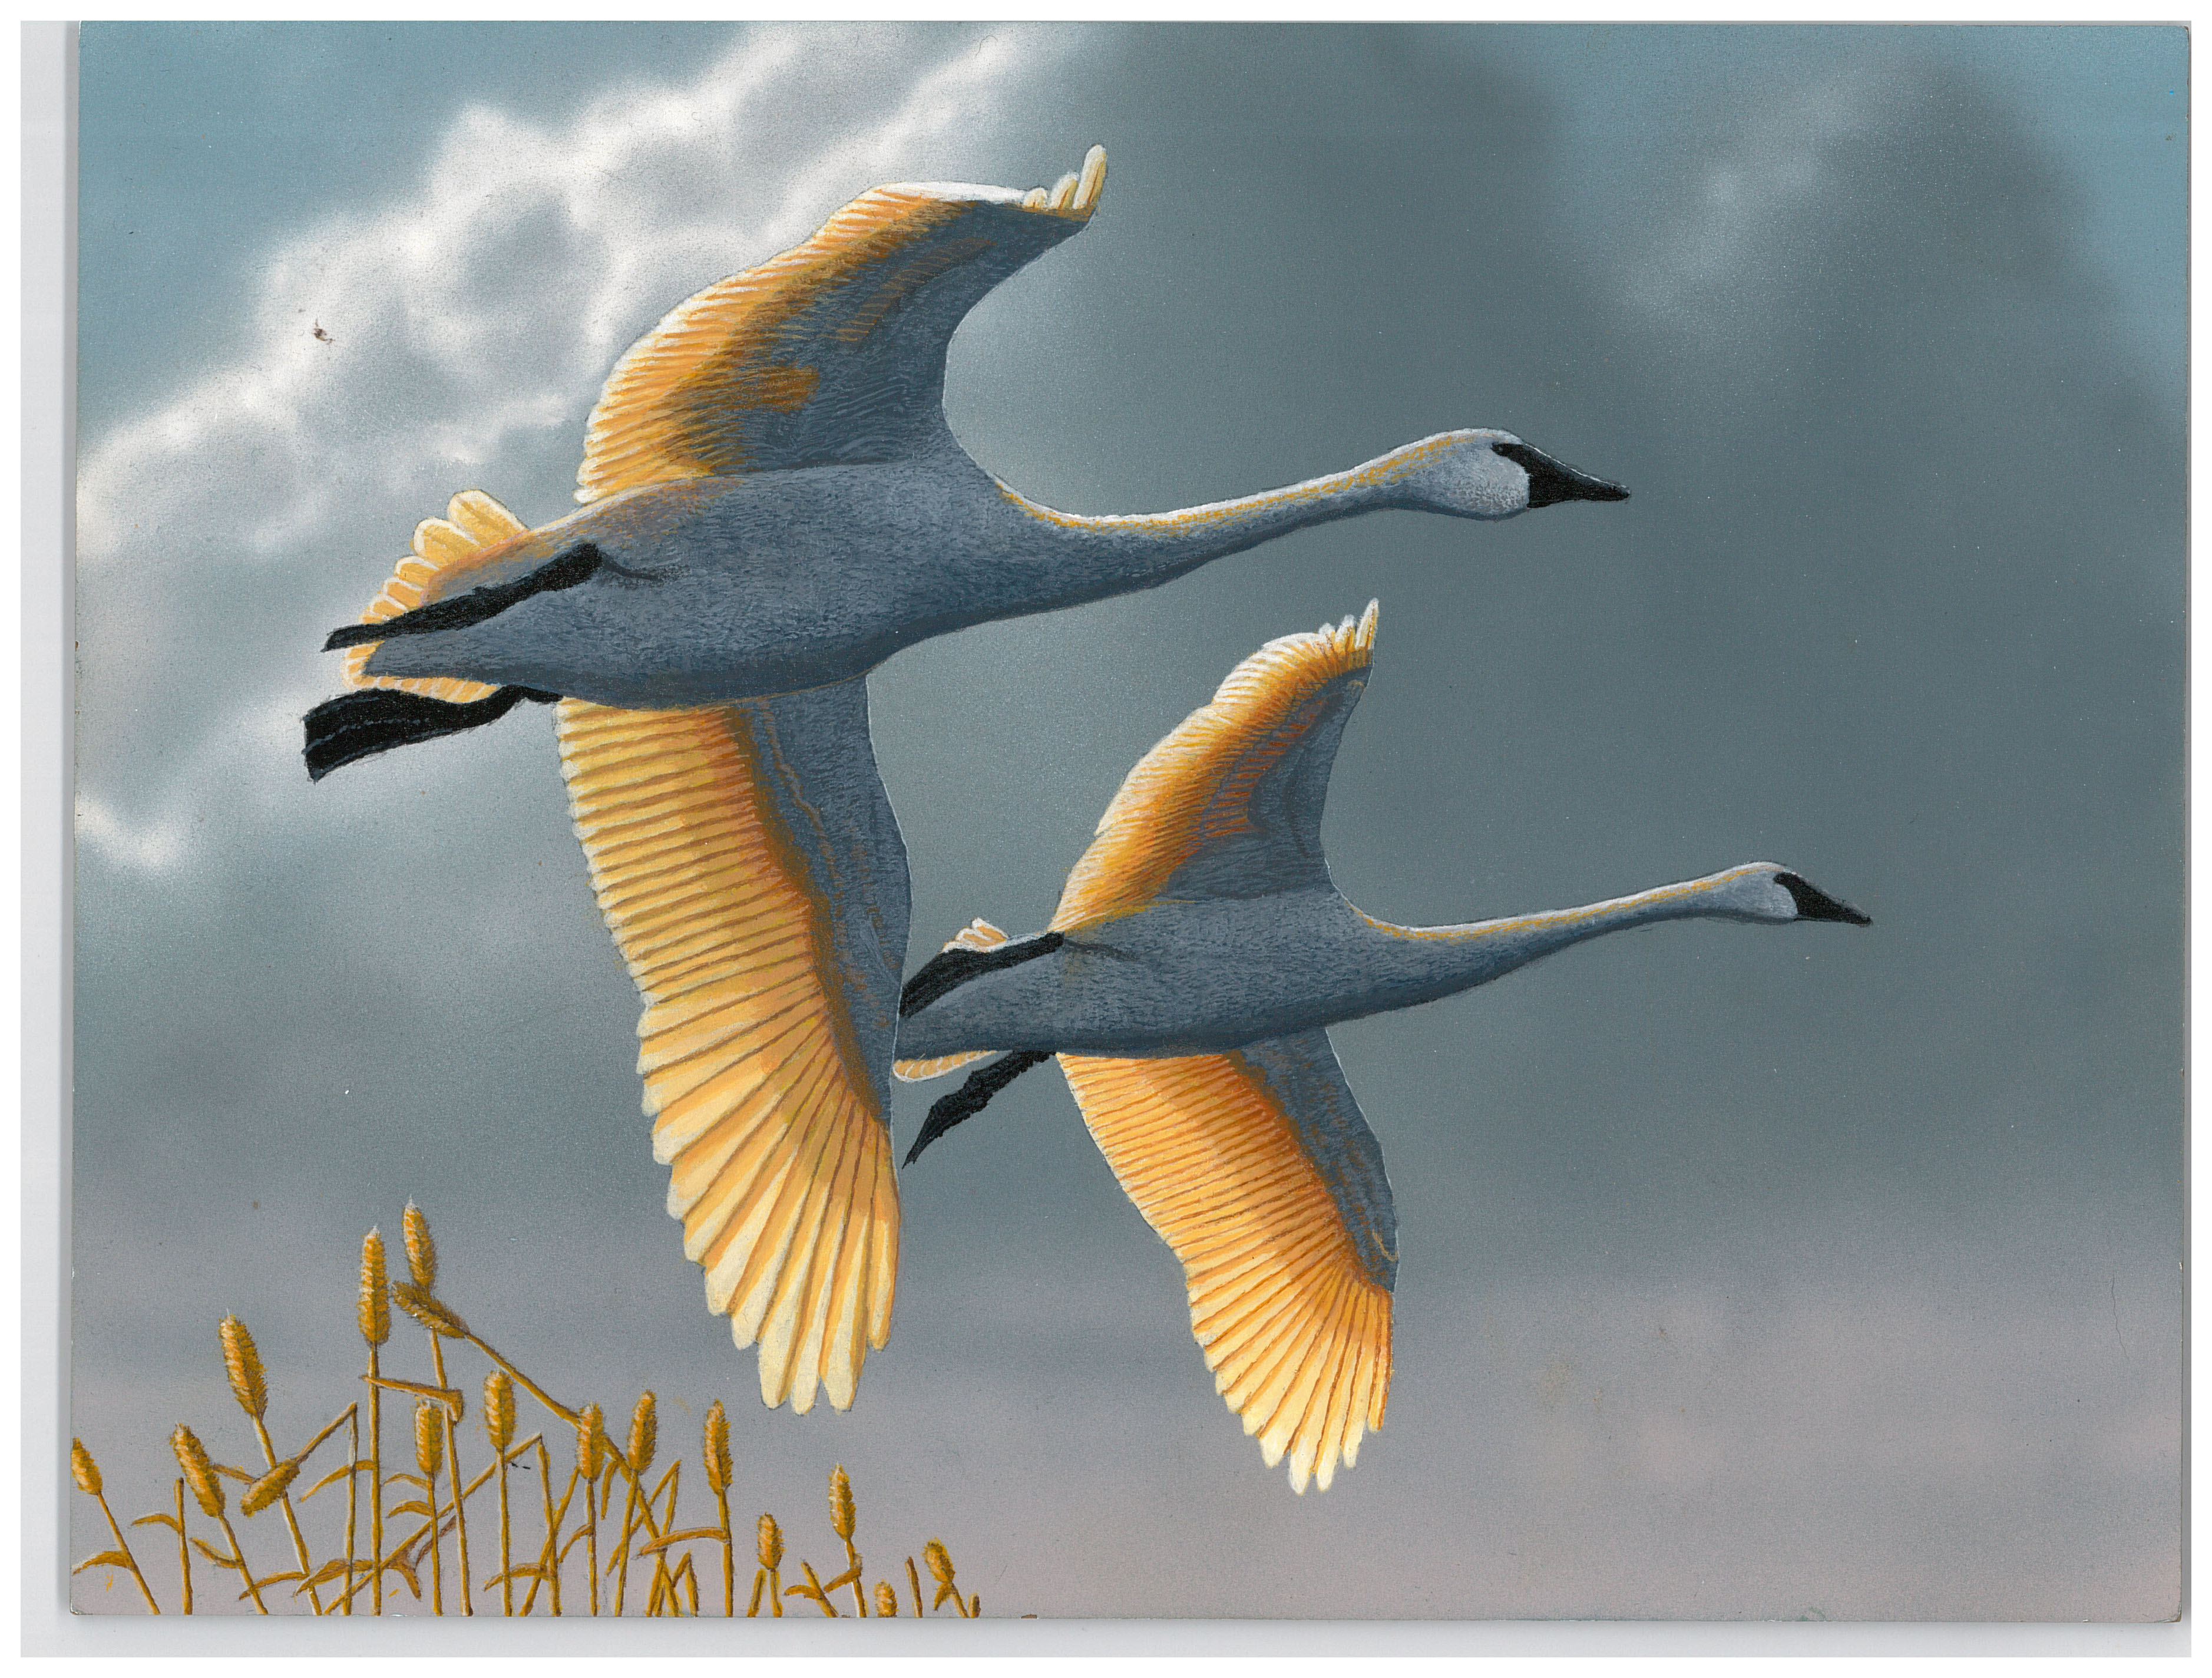 2016 Junior Duck Stamp Best of Show featuring Ross's geese